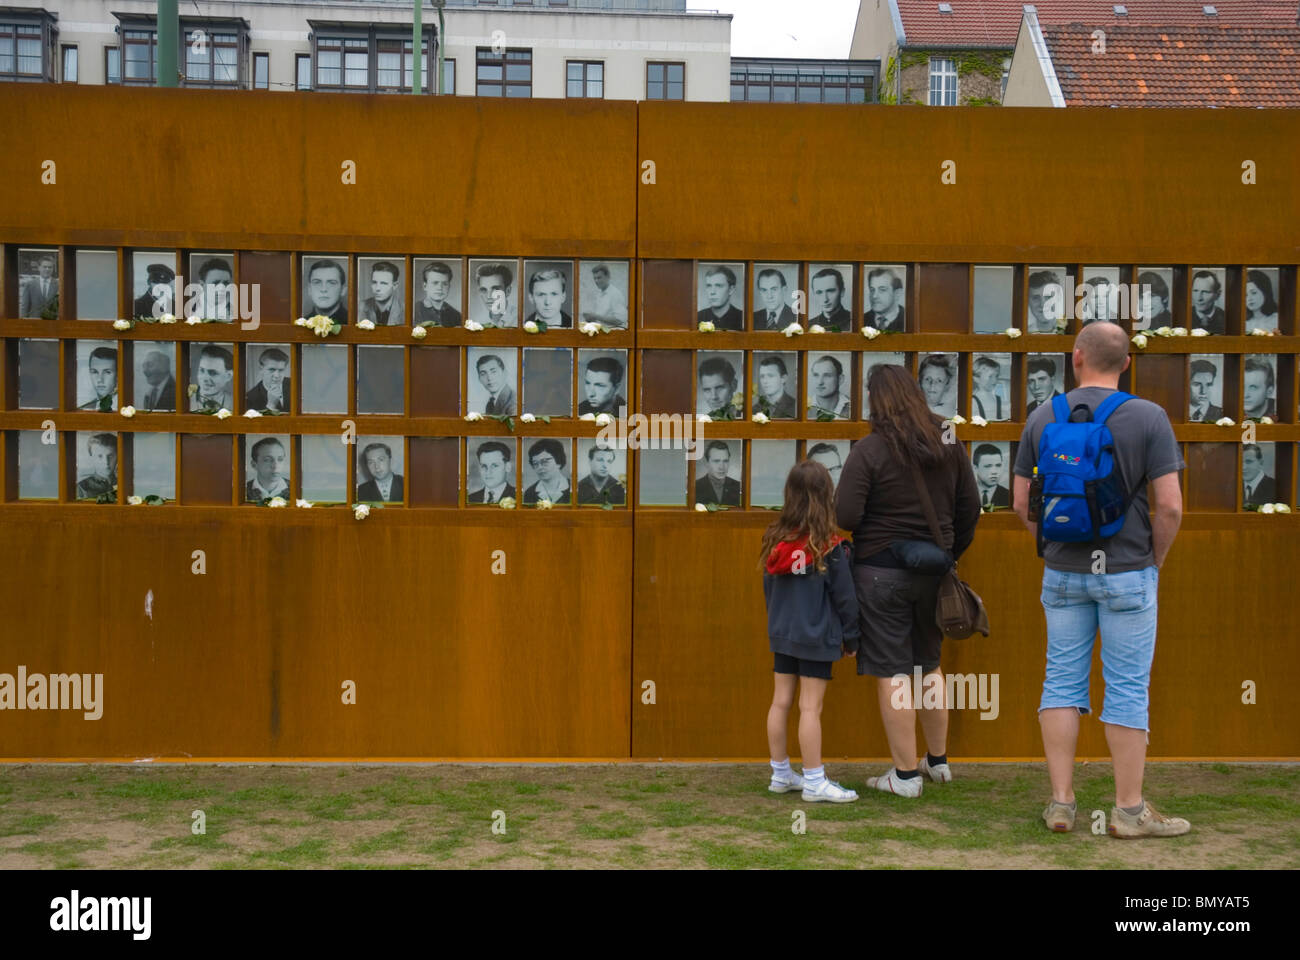 Berlin Wall exhibition at Nordbahnhof metro station between old east and west Mitte Berlin Germany Europe - Stock Image